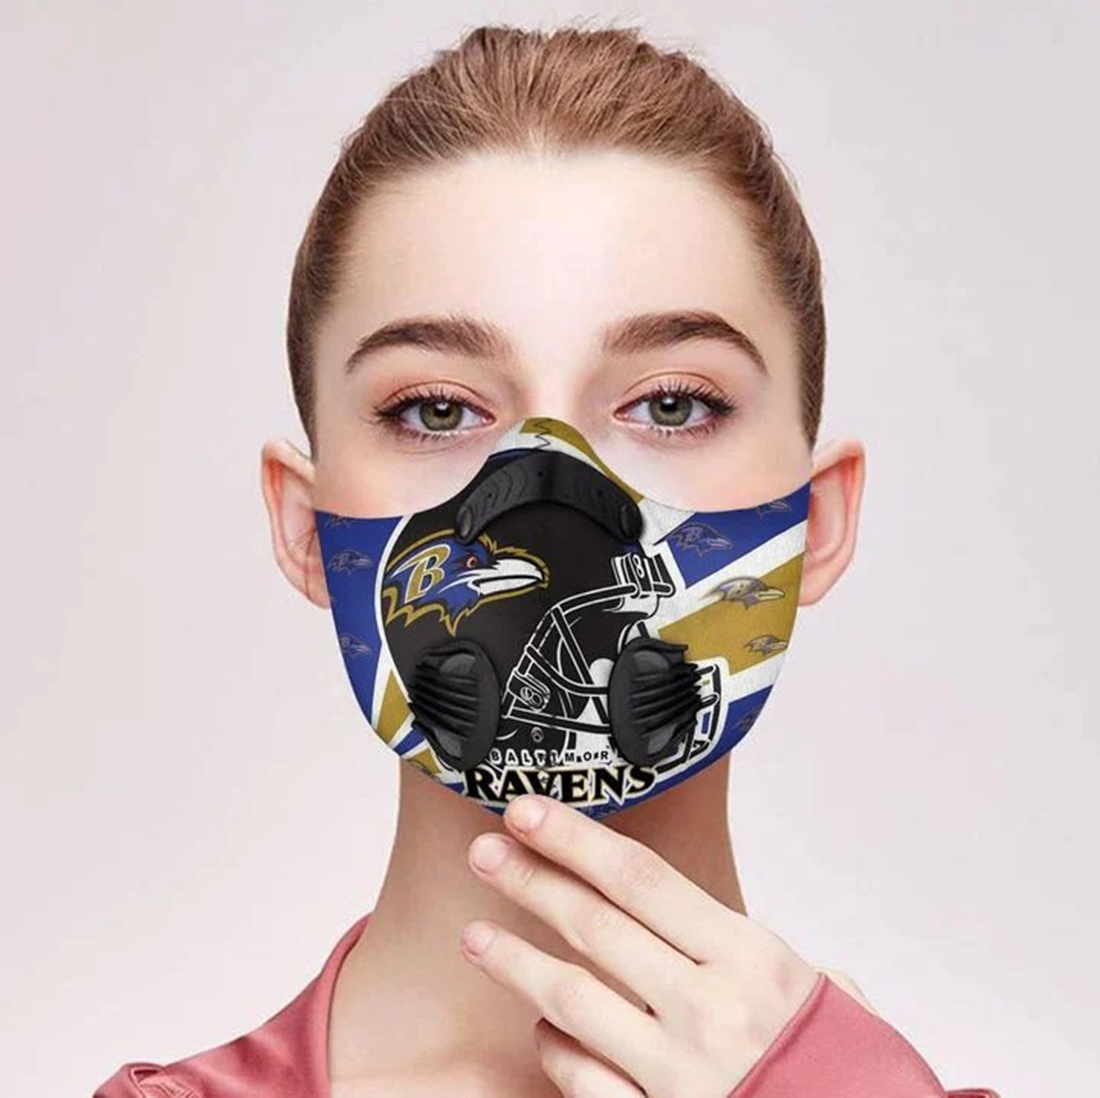 Baltimore ravens filter face mask - Picture 1